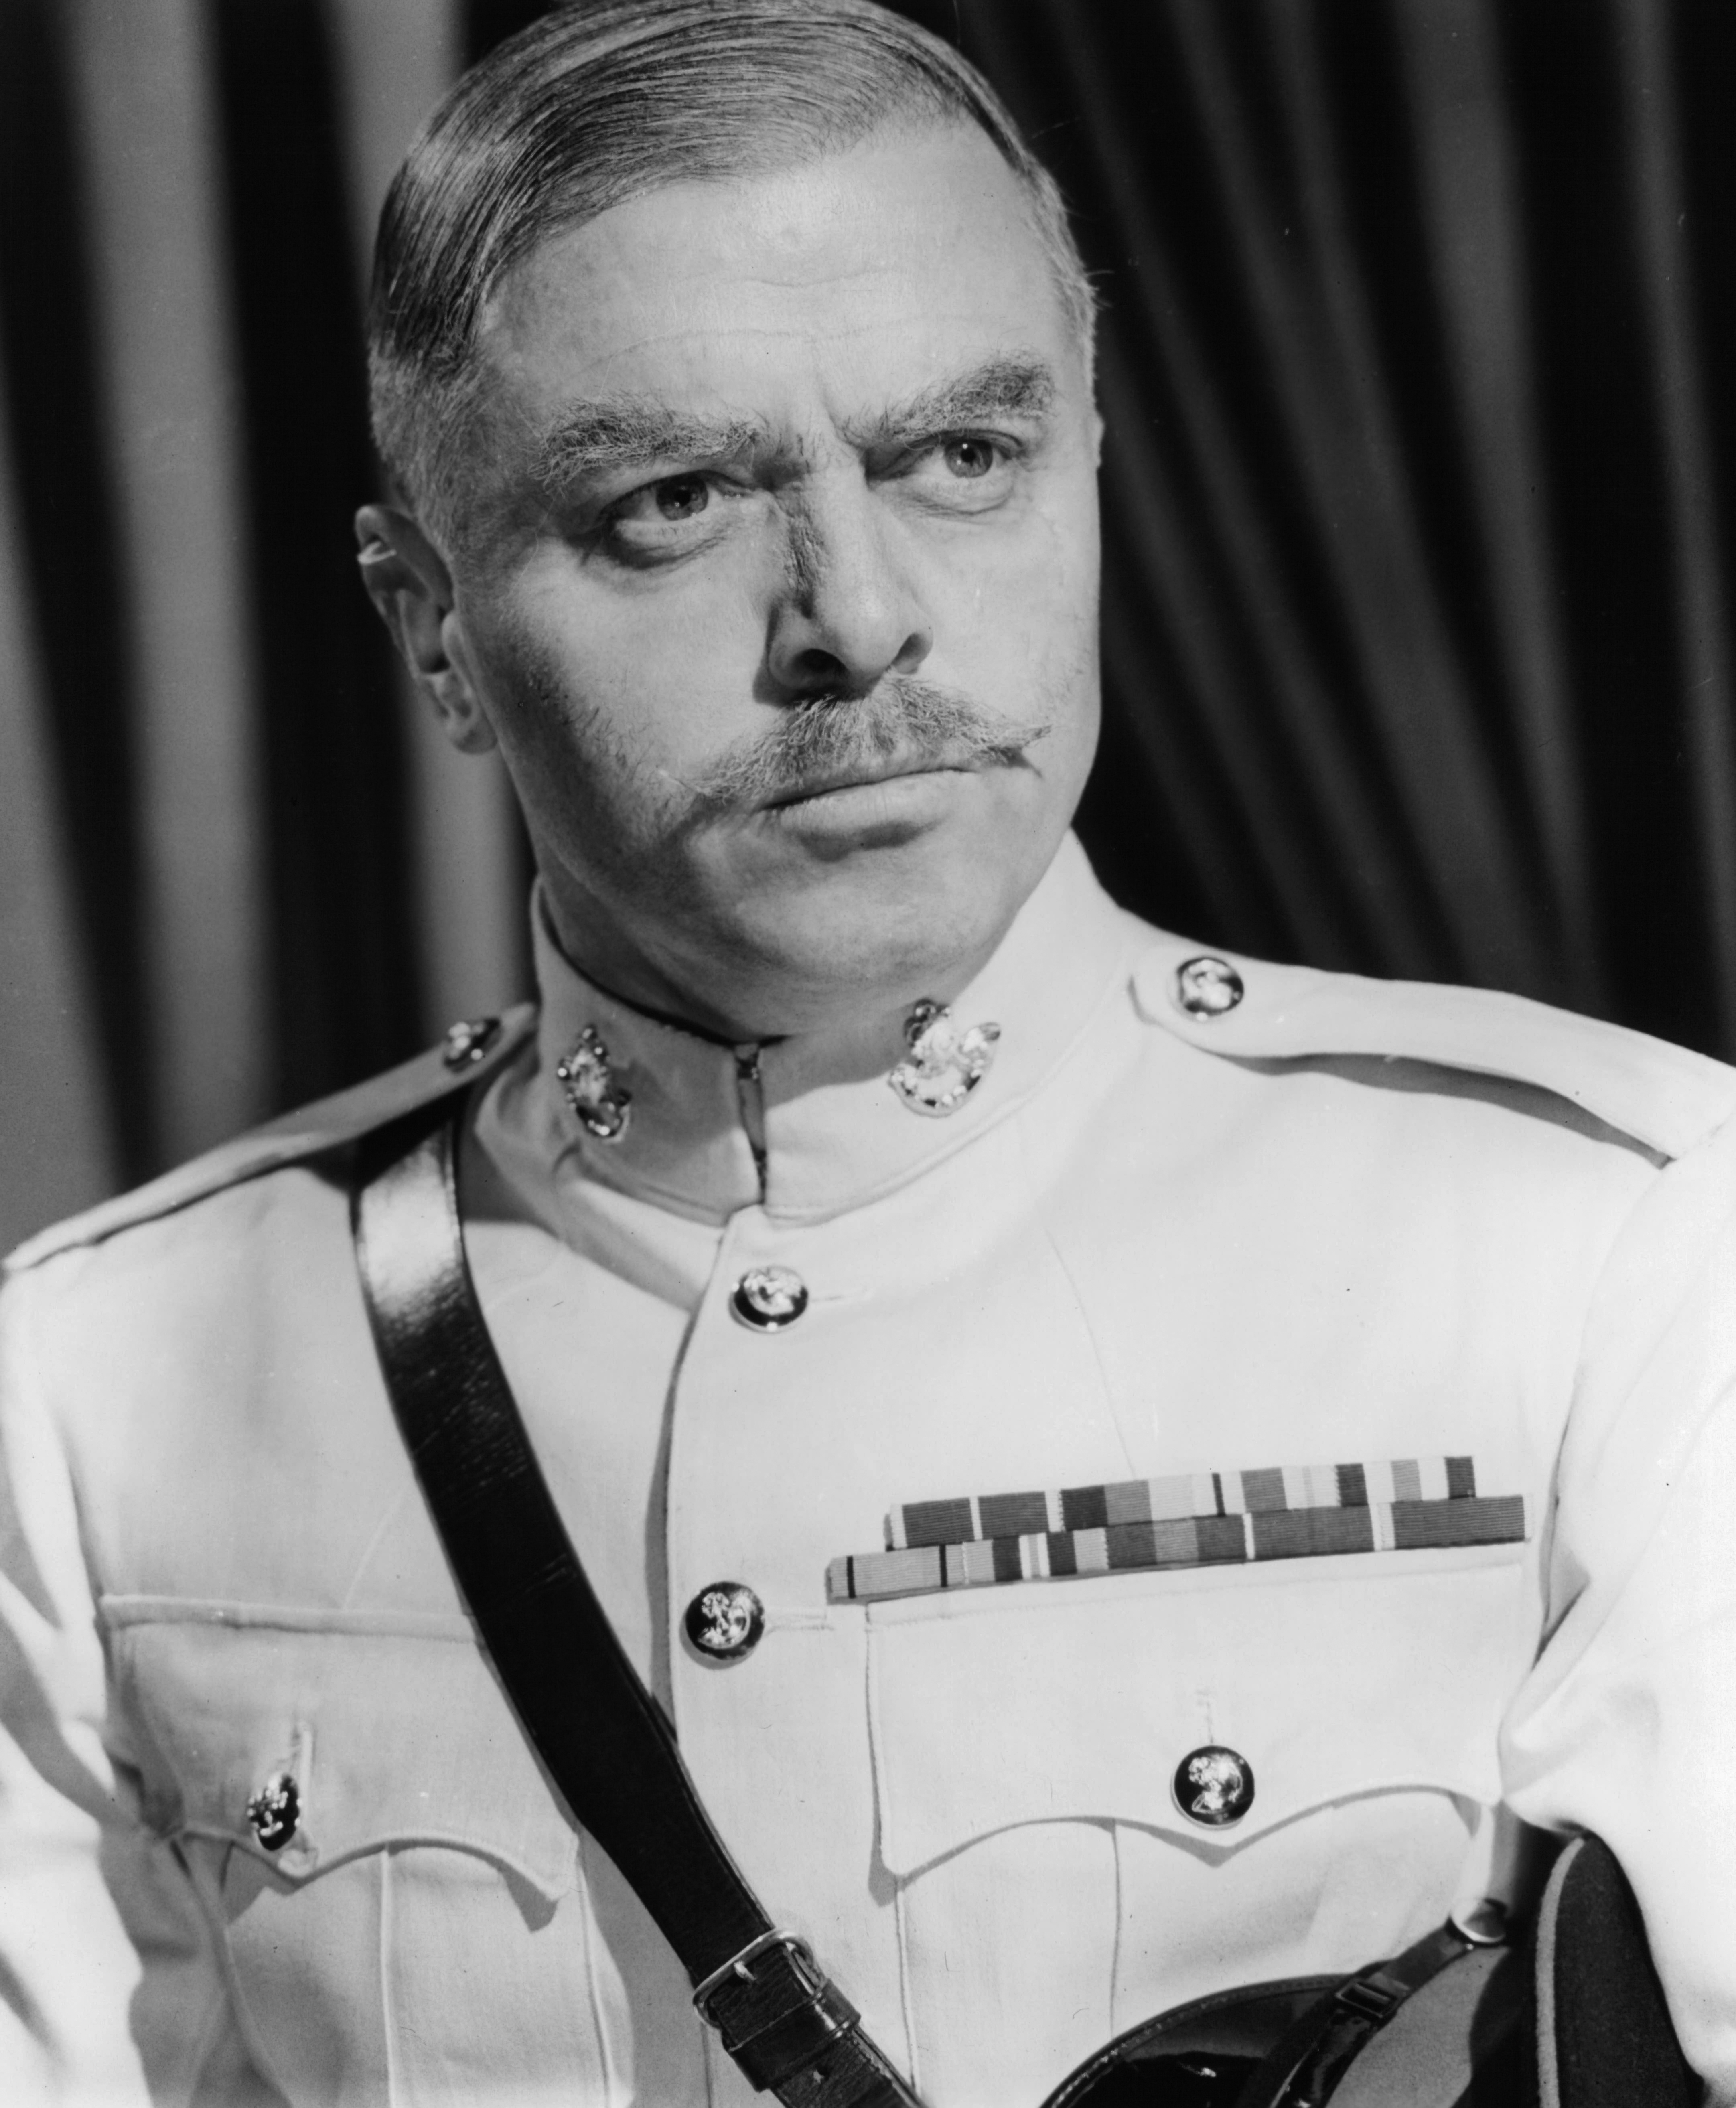 Richard Attenborough standing in uniform in a scene from the film Guns At Batas in 1964.